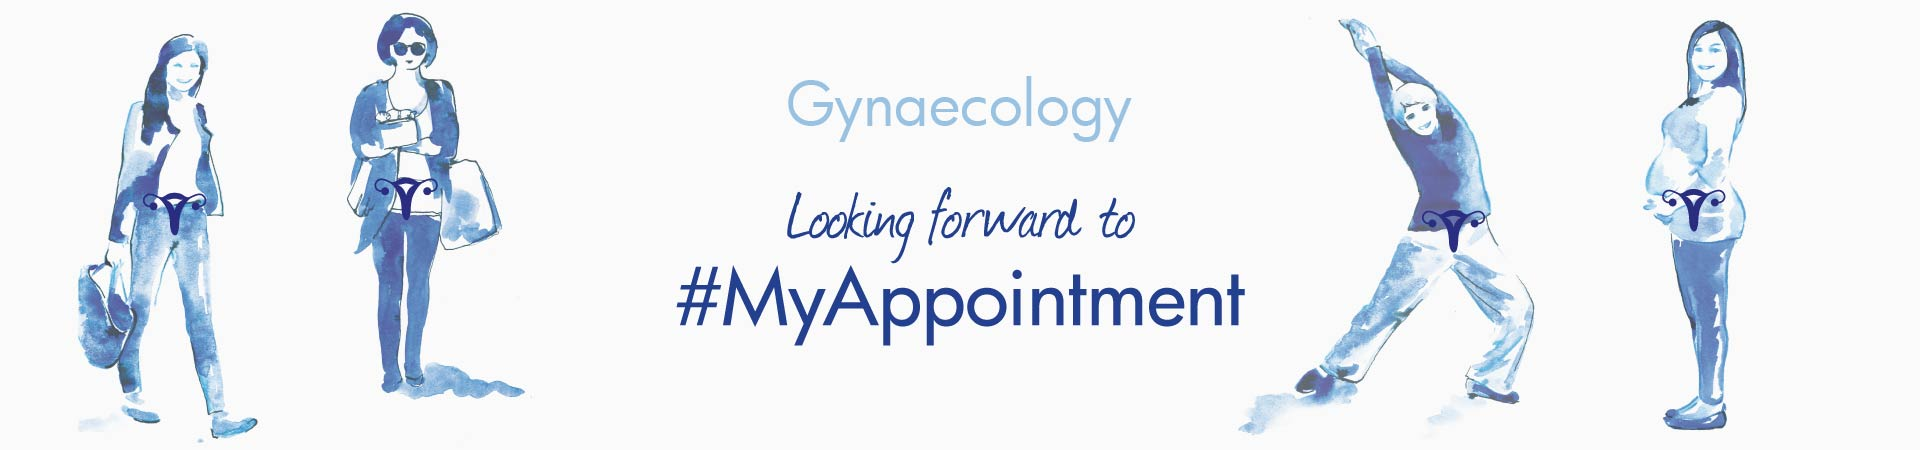 gyneacology campaing